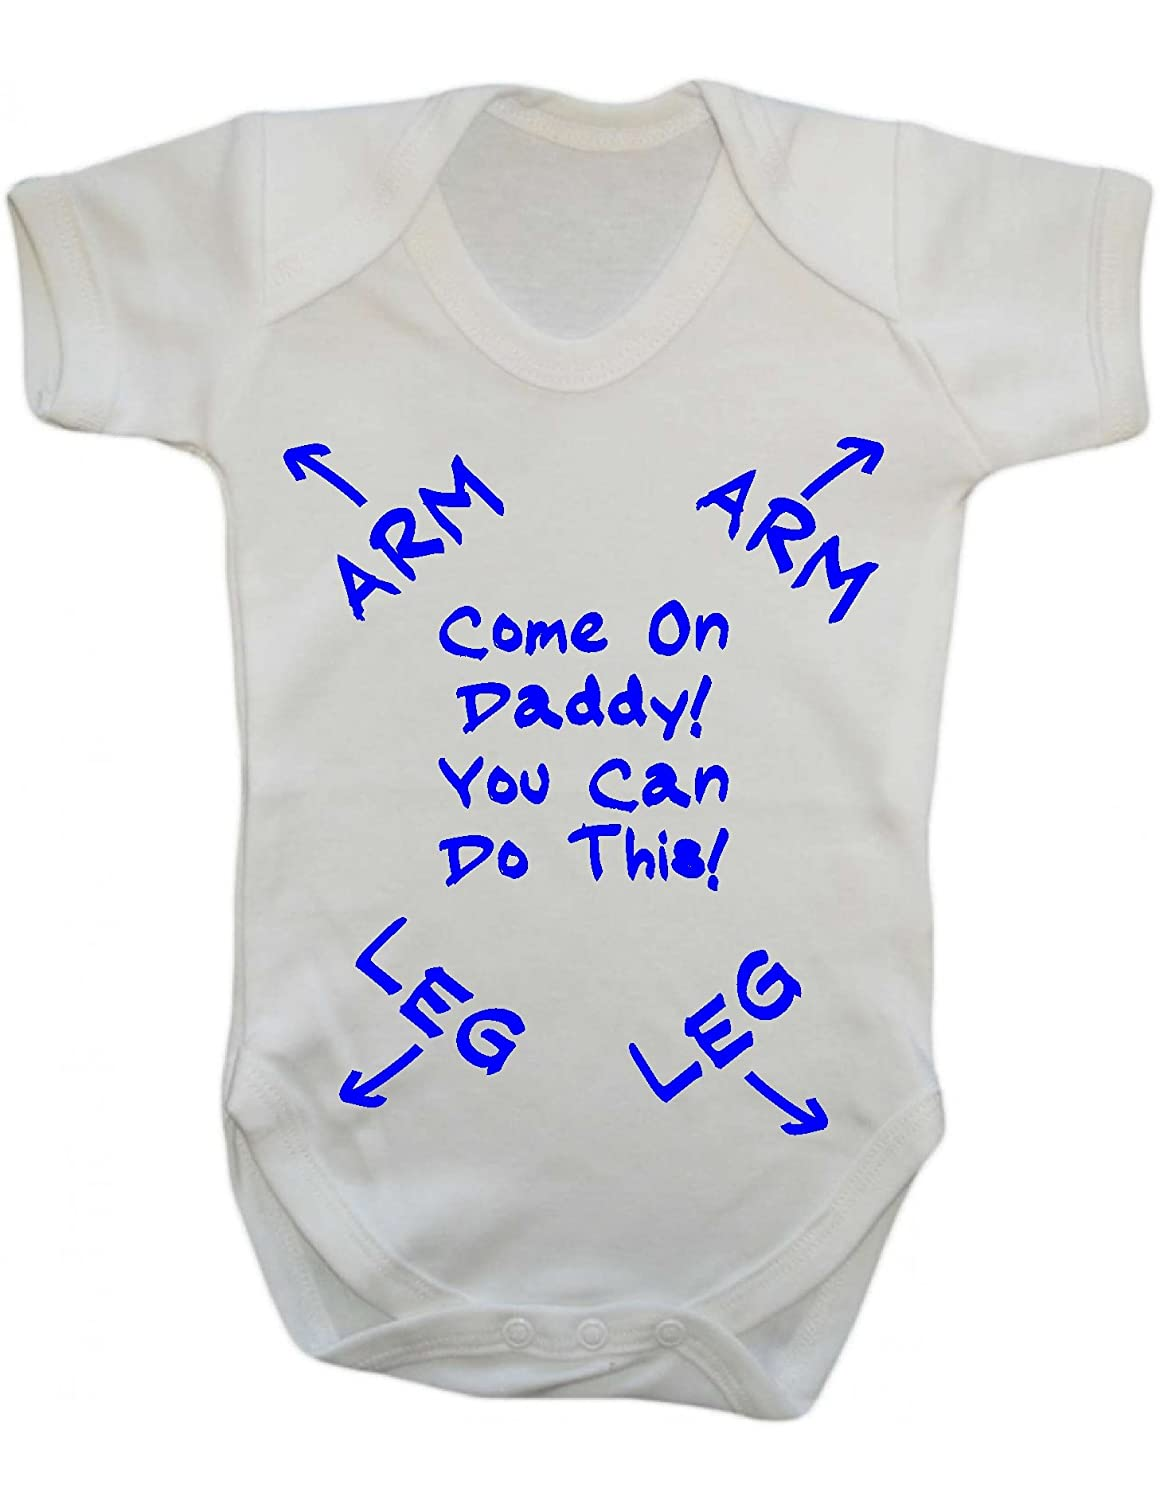 Personalised 1st Father/'s Day Baby Outfit,Grow,Bodysuit Unique Daddy NewbornGift